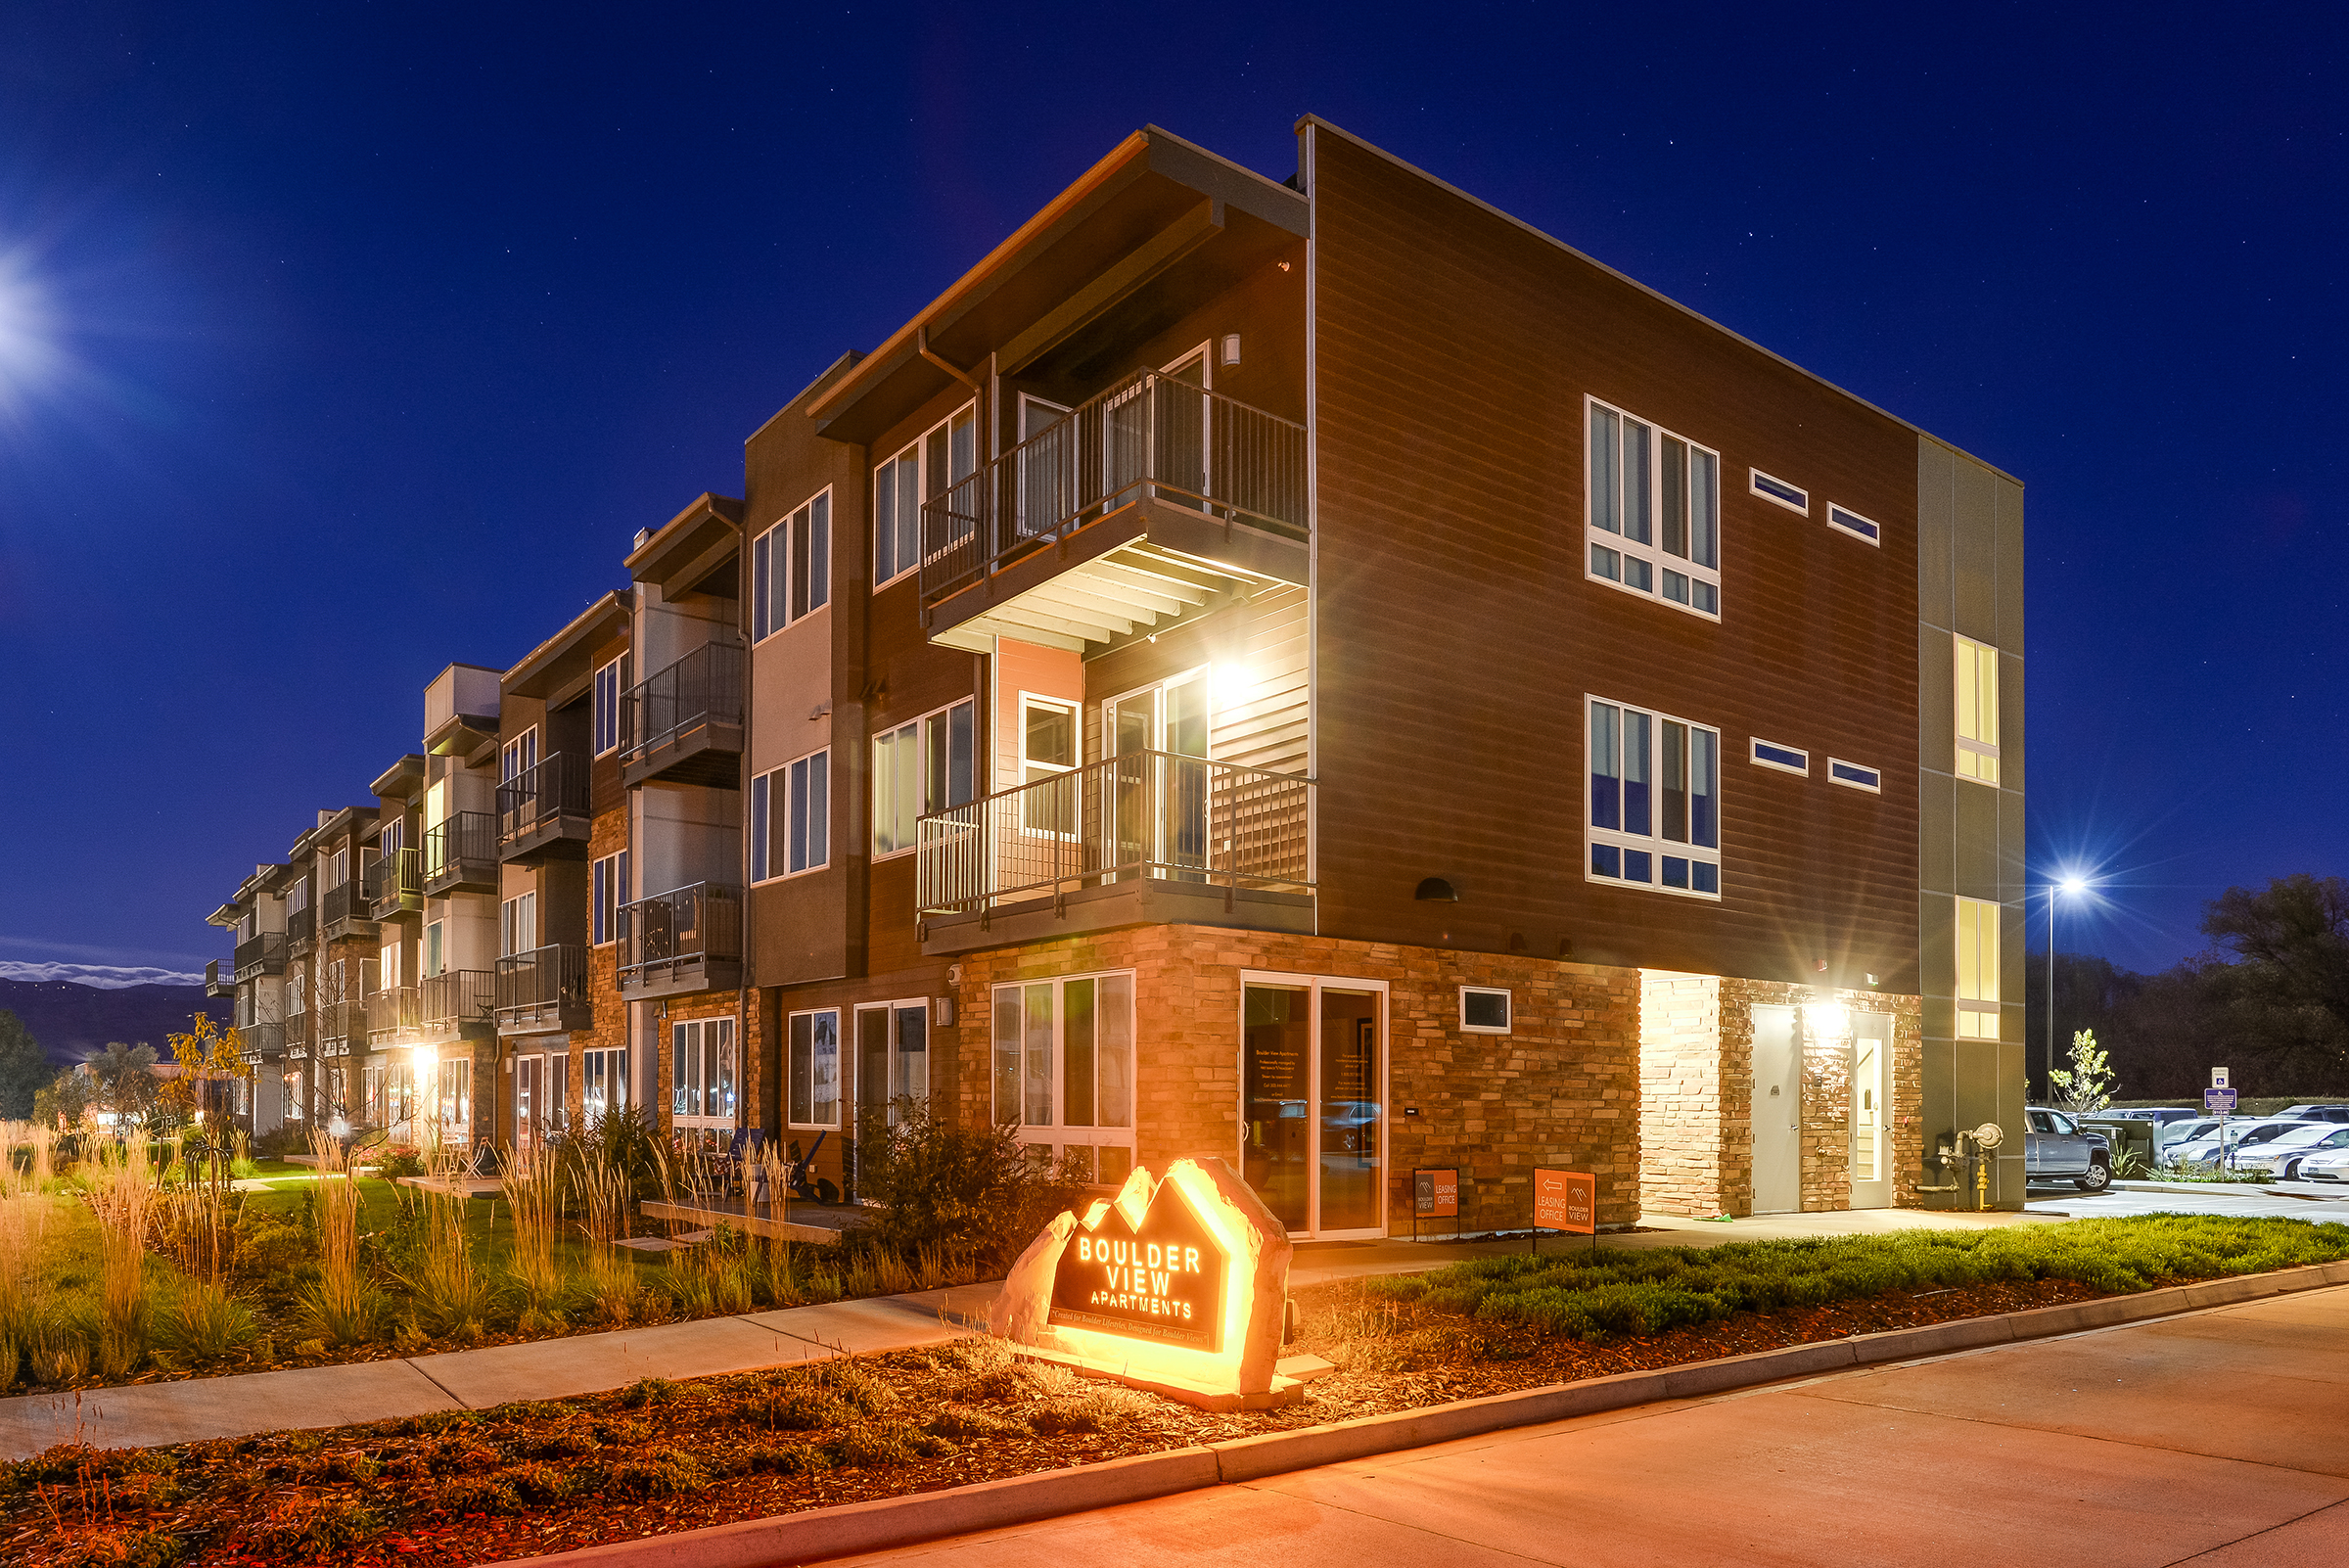 Boulder View Apartments Trades for $22M